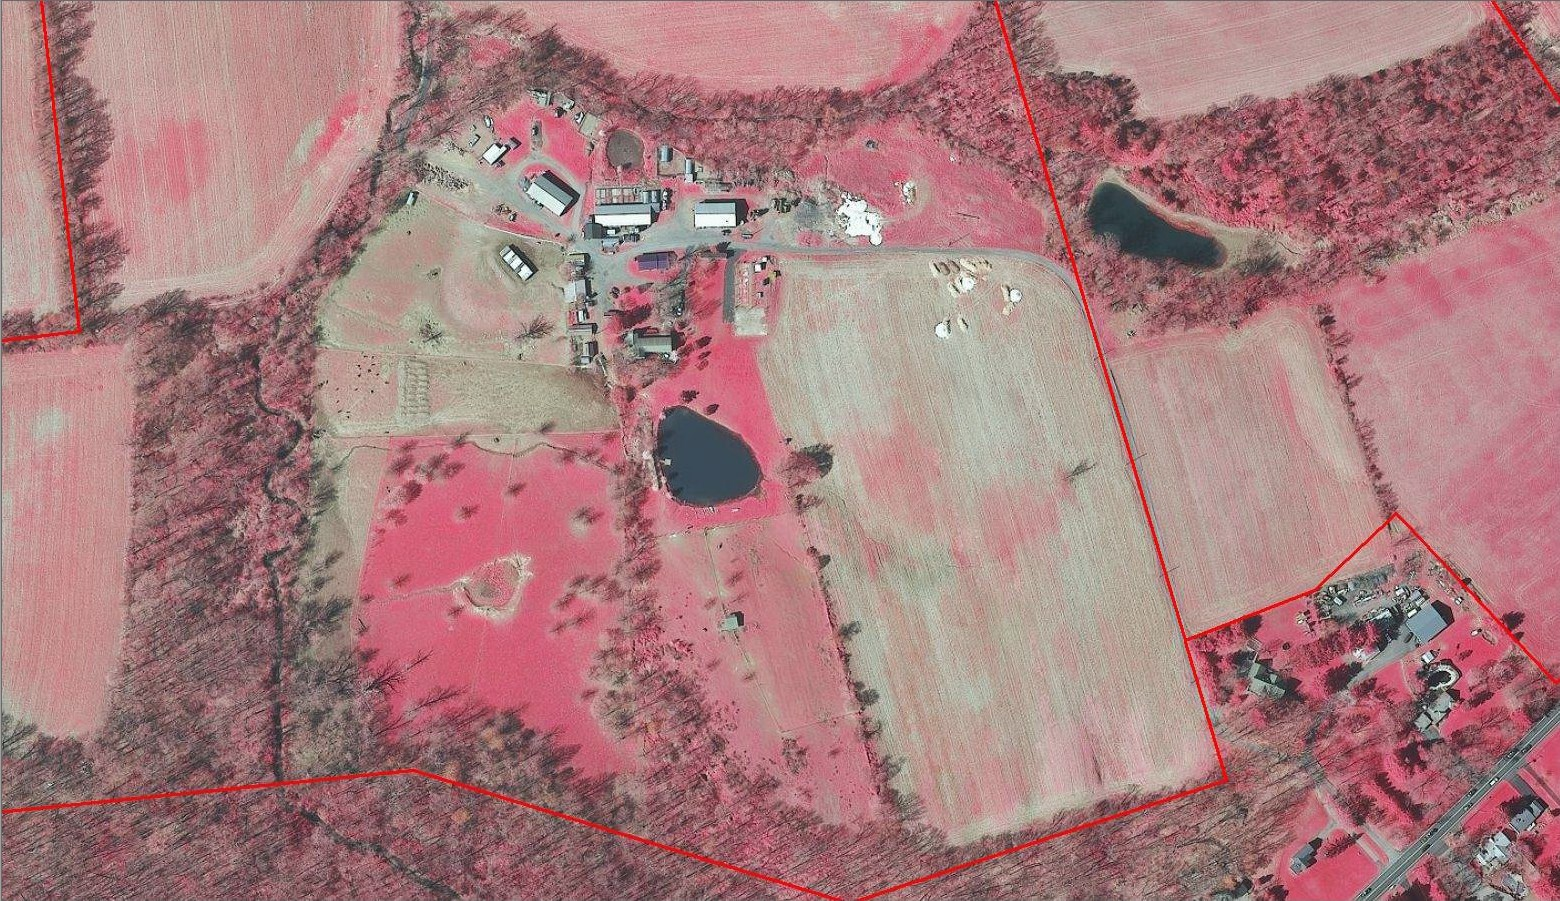 Features such as streams and dirt roads are more easily defined under infrared imagery.